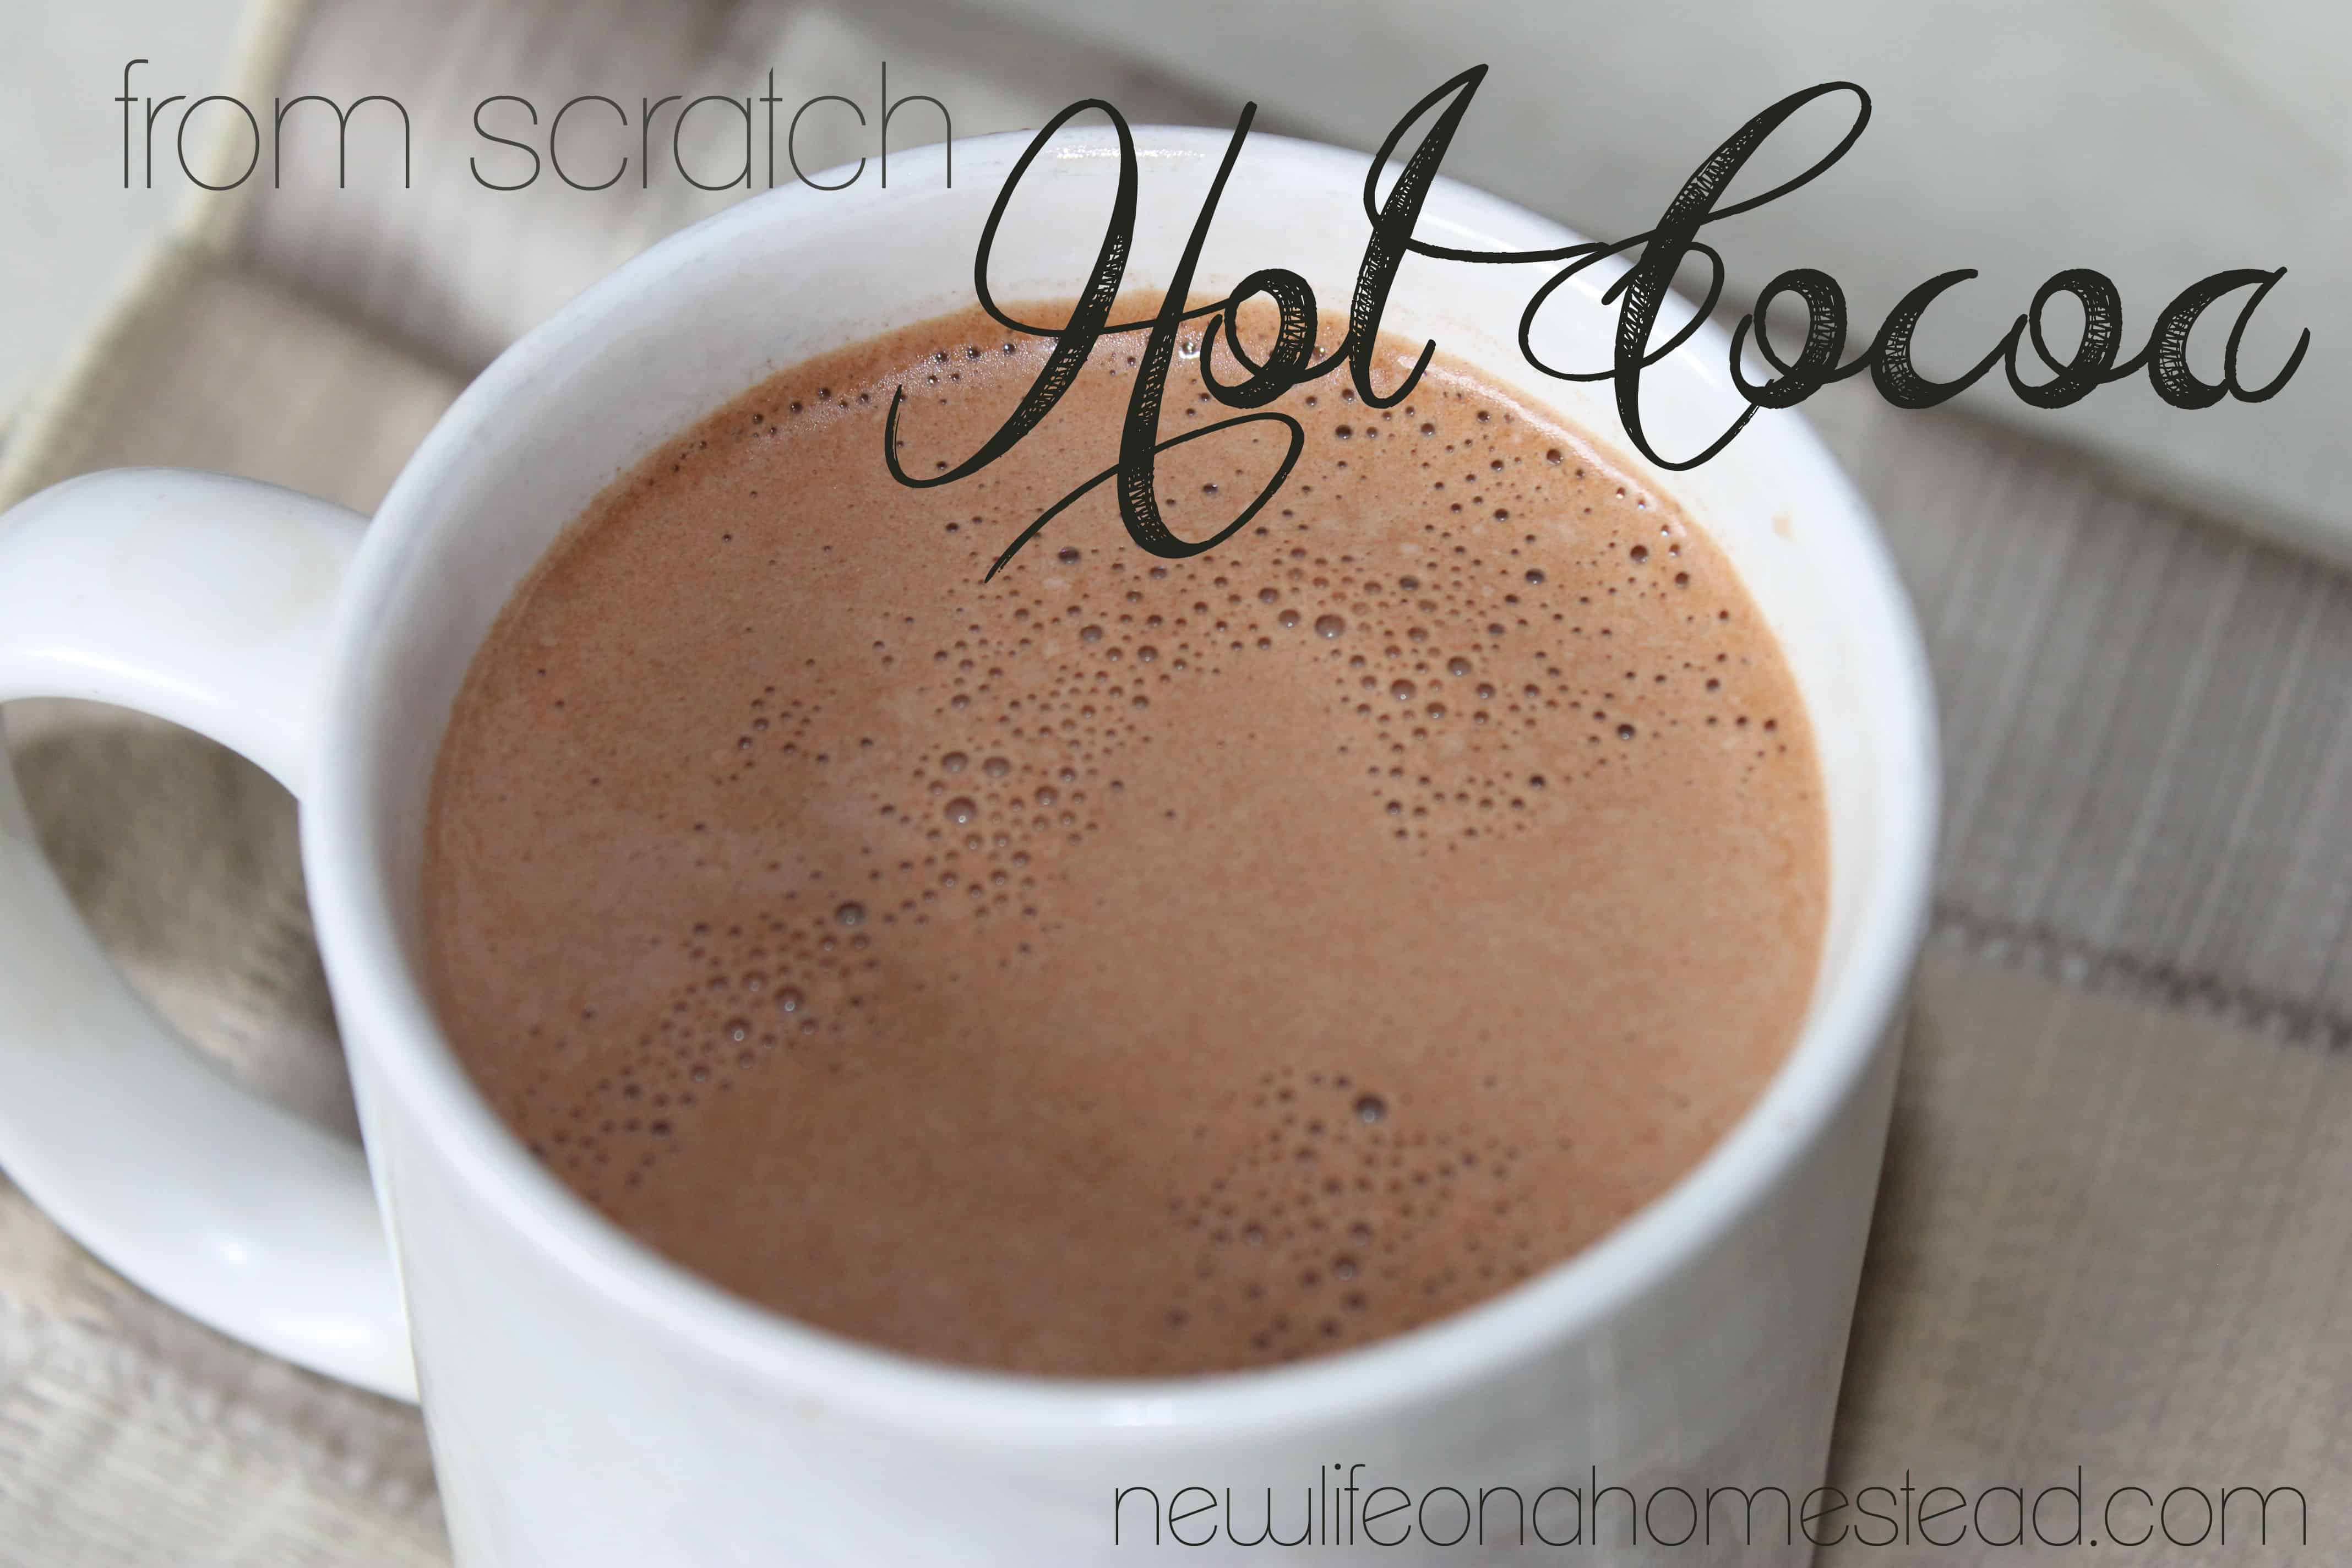 from scratch hot cocoa